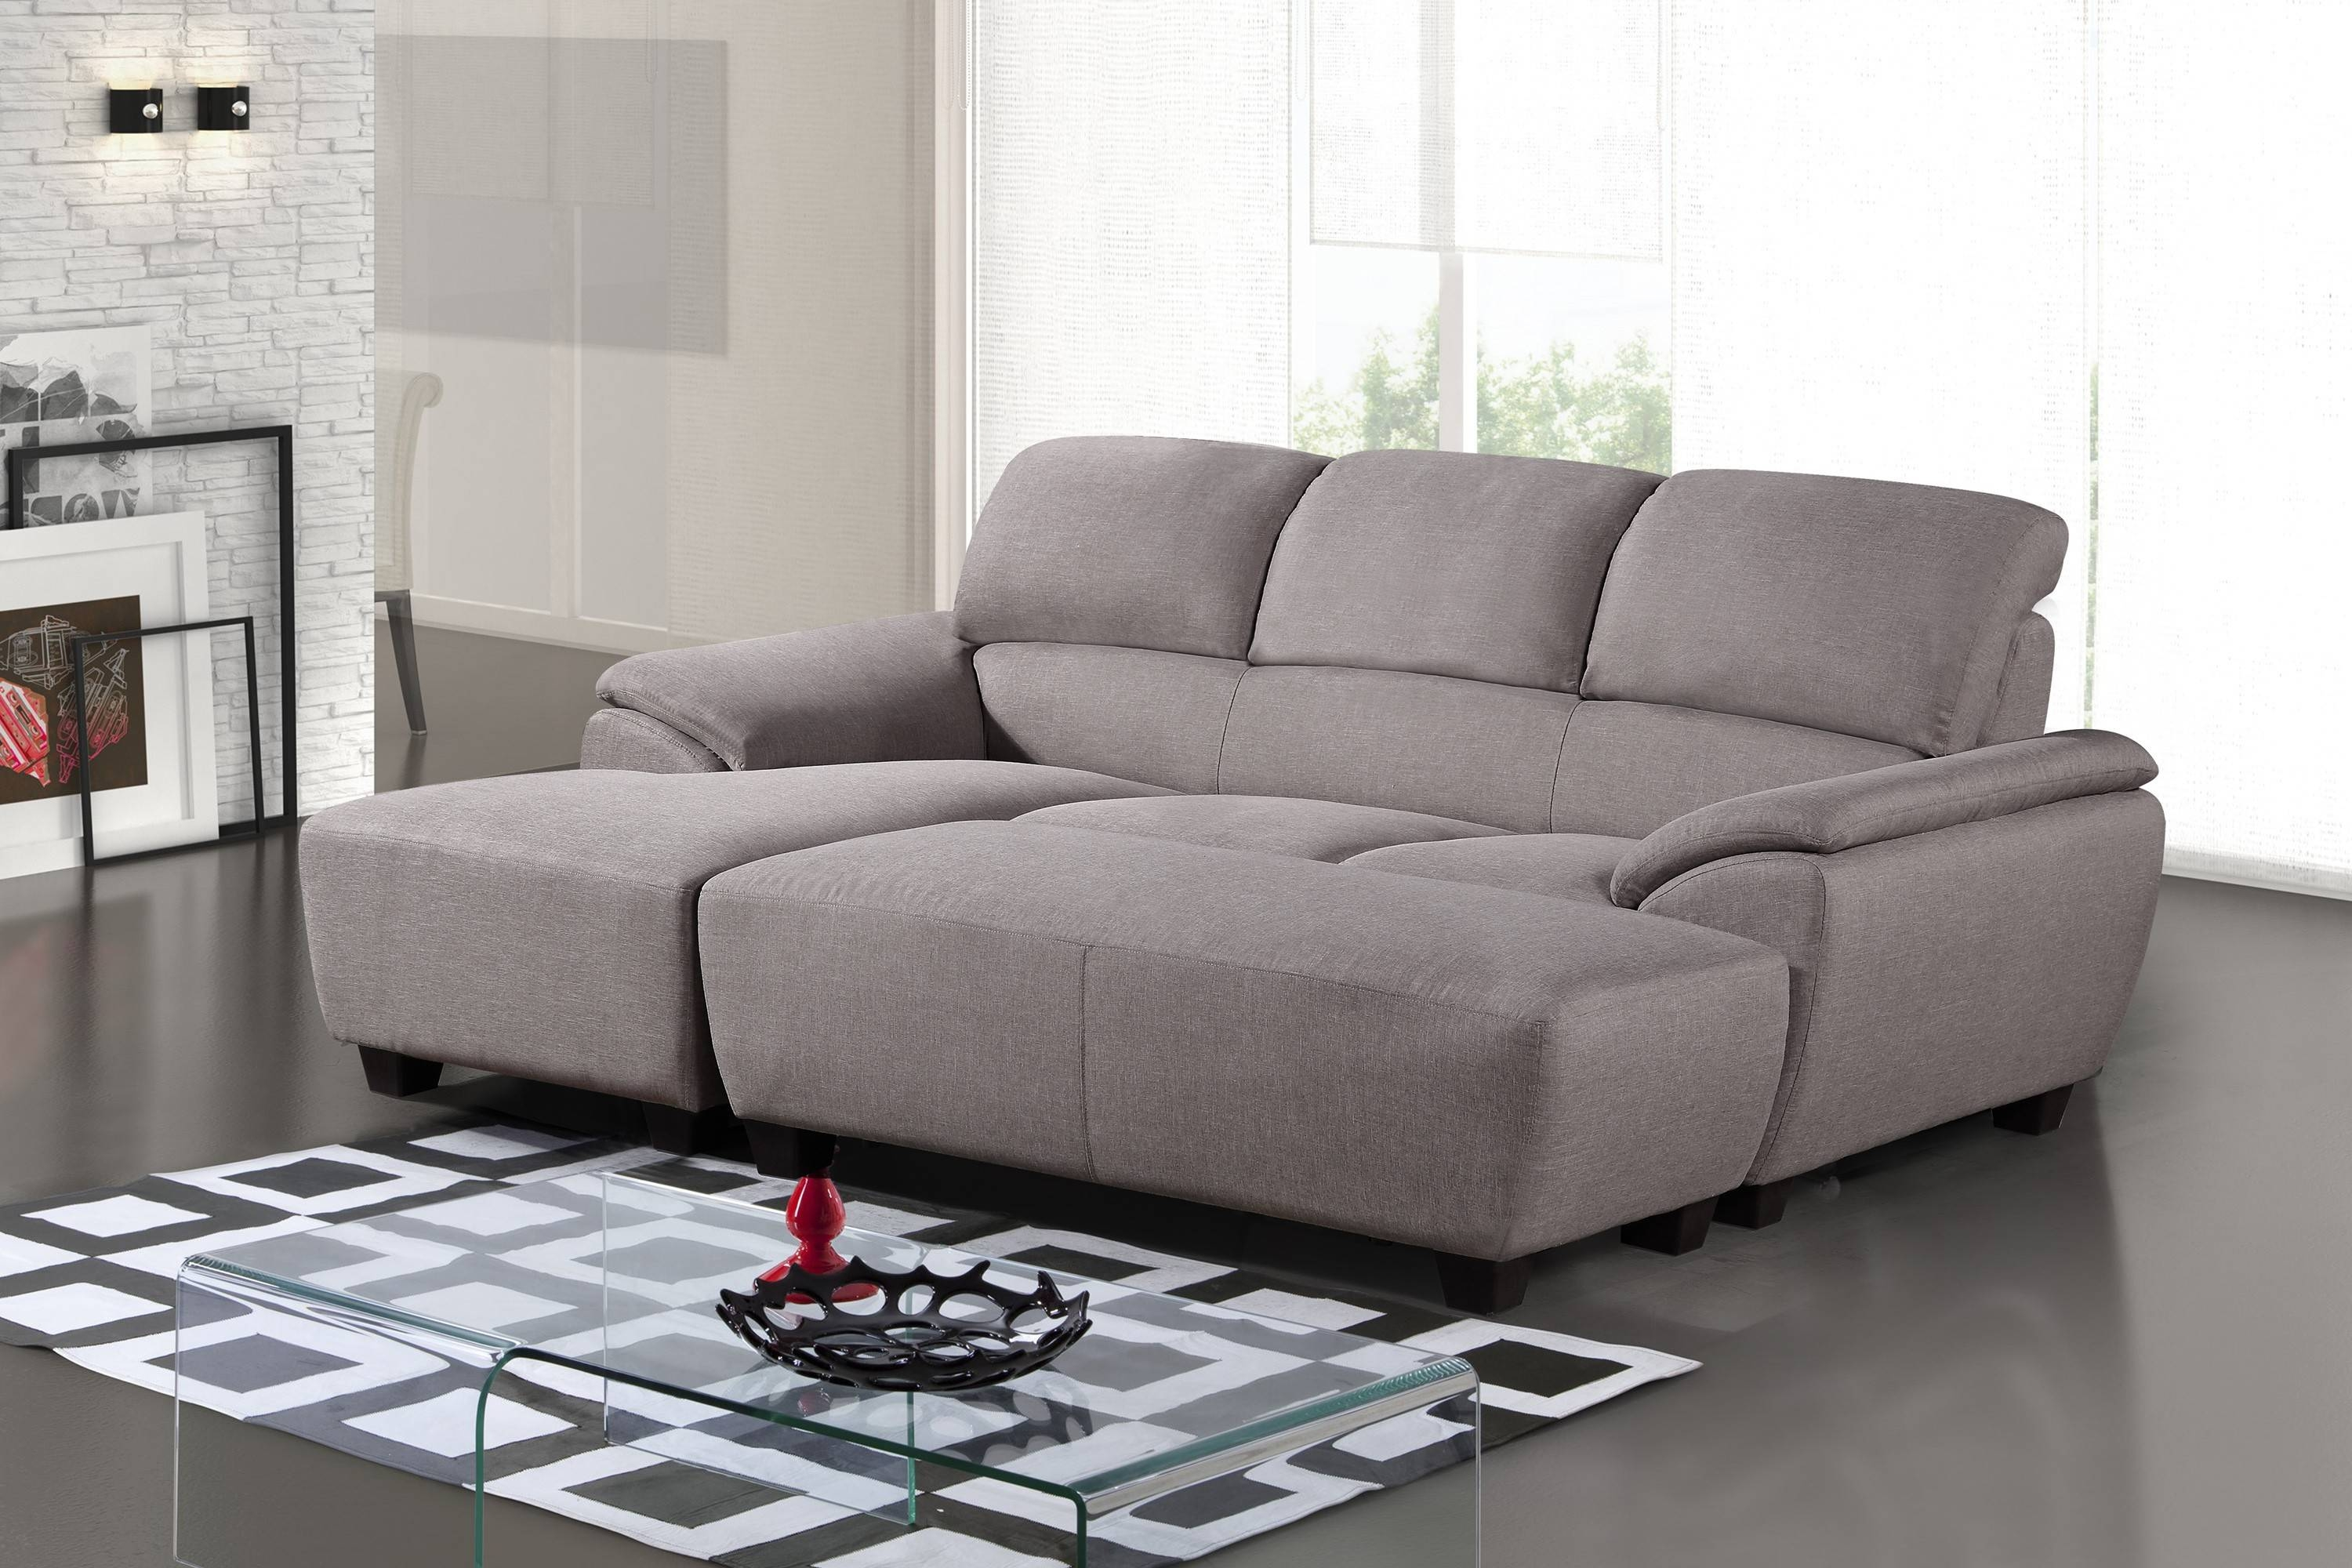 Sofas Center : Best Qualitys Awesome Images Ideas The Top Outdoor throughout Quality Sectional Sofa (Image 22 of 30)